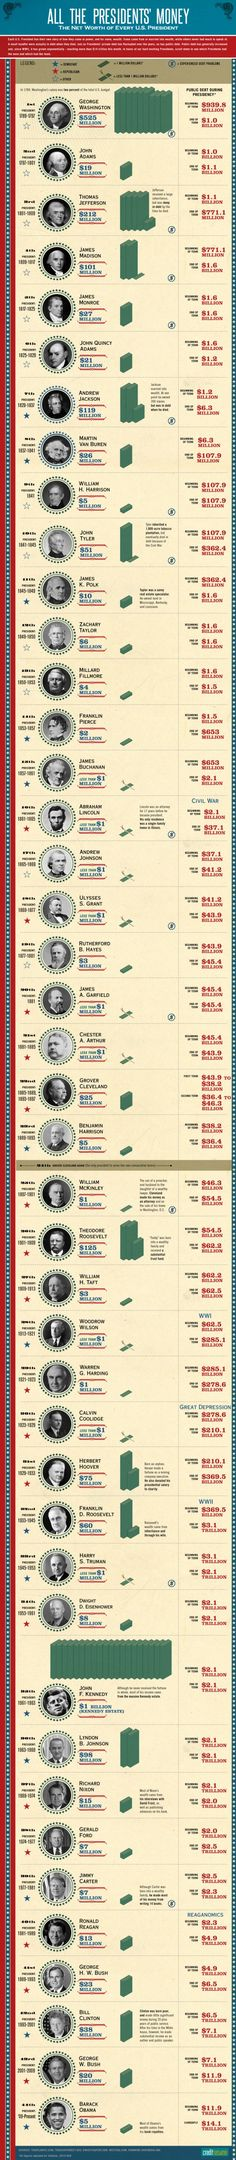 All The Presidents' Money: The Net Worth of Every US President